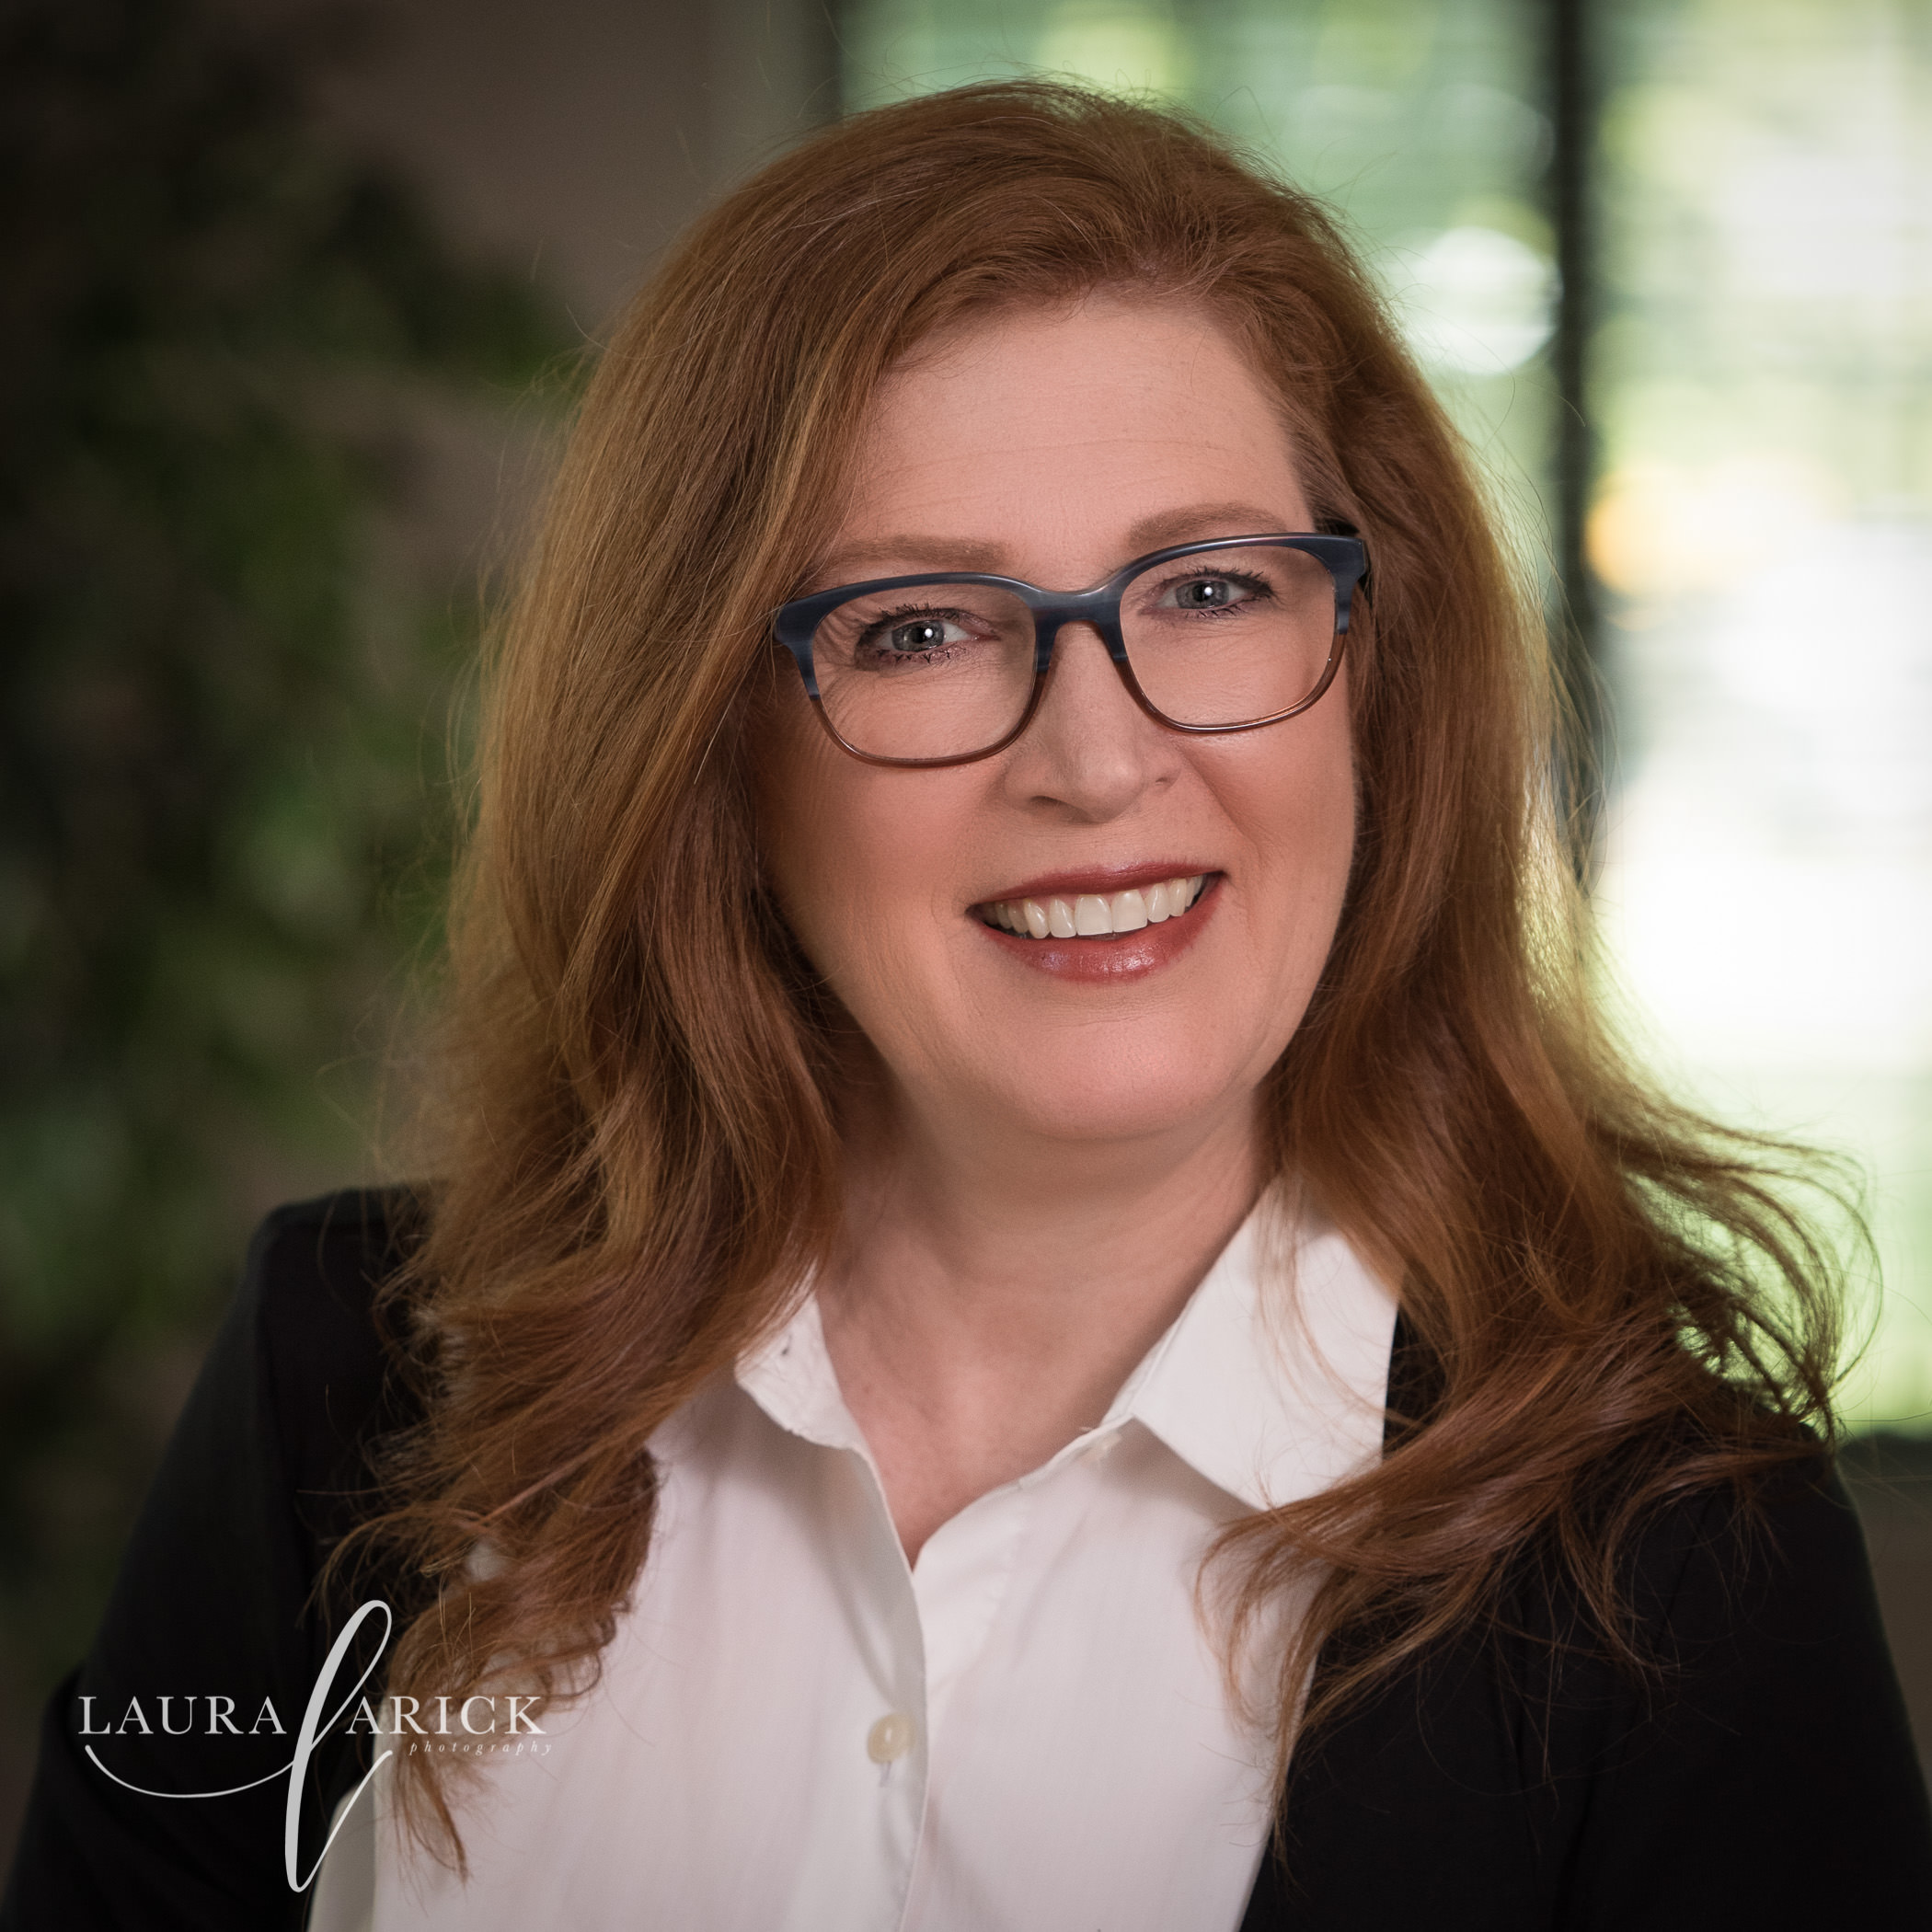 Business Head Shots Indy | Laura Arick Photography